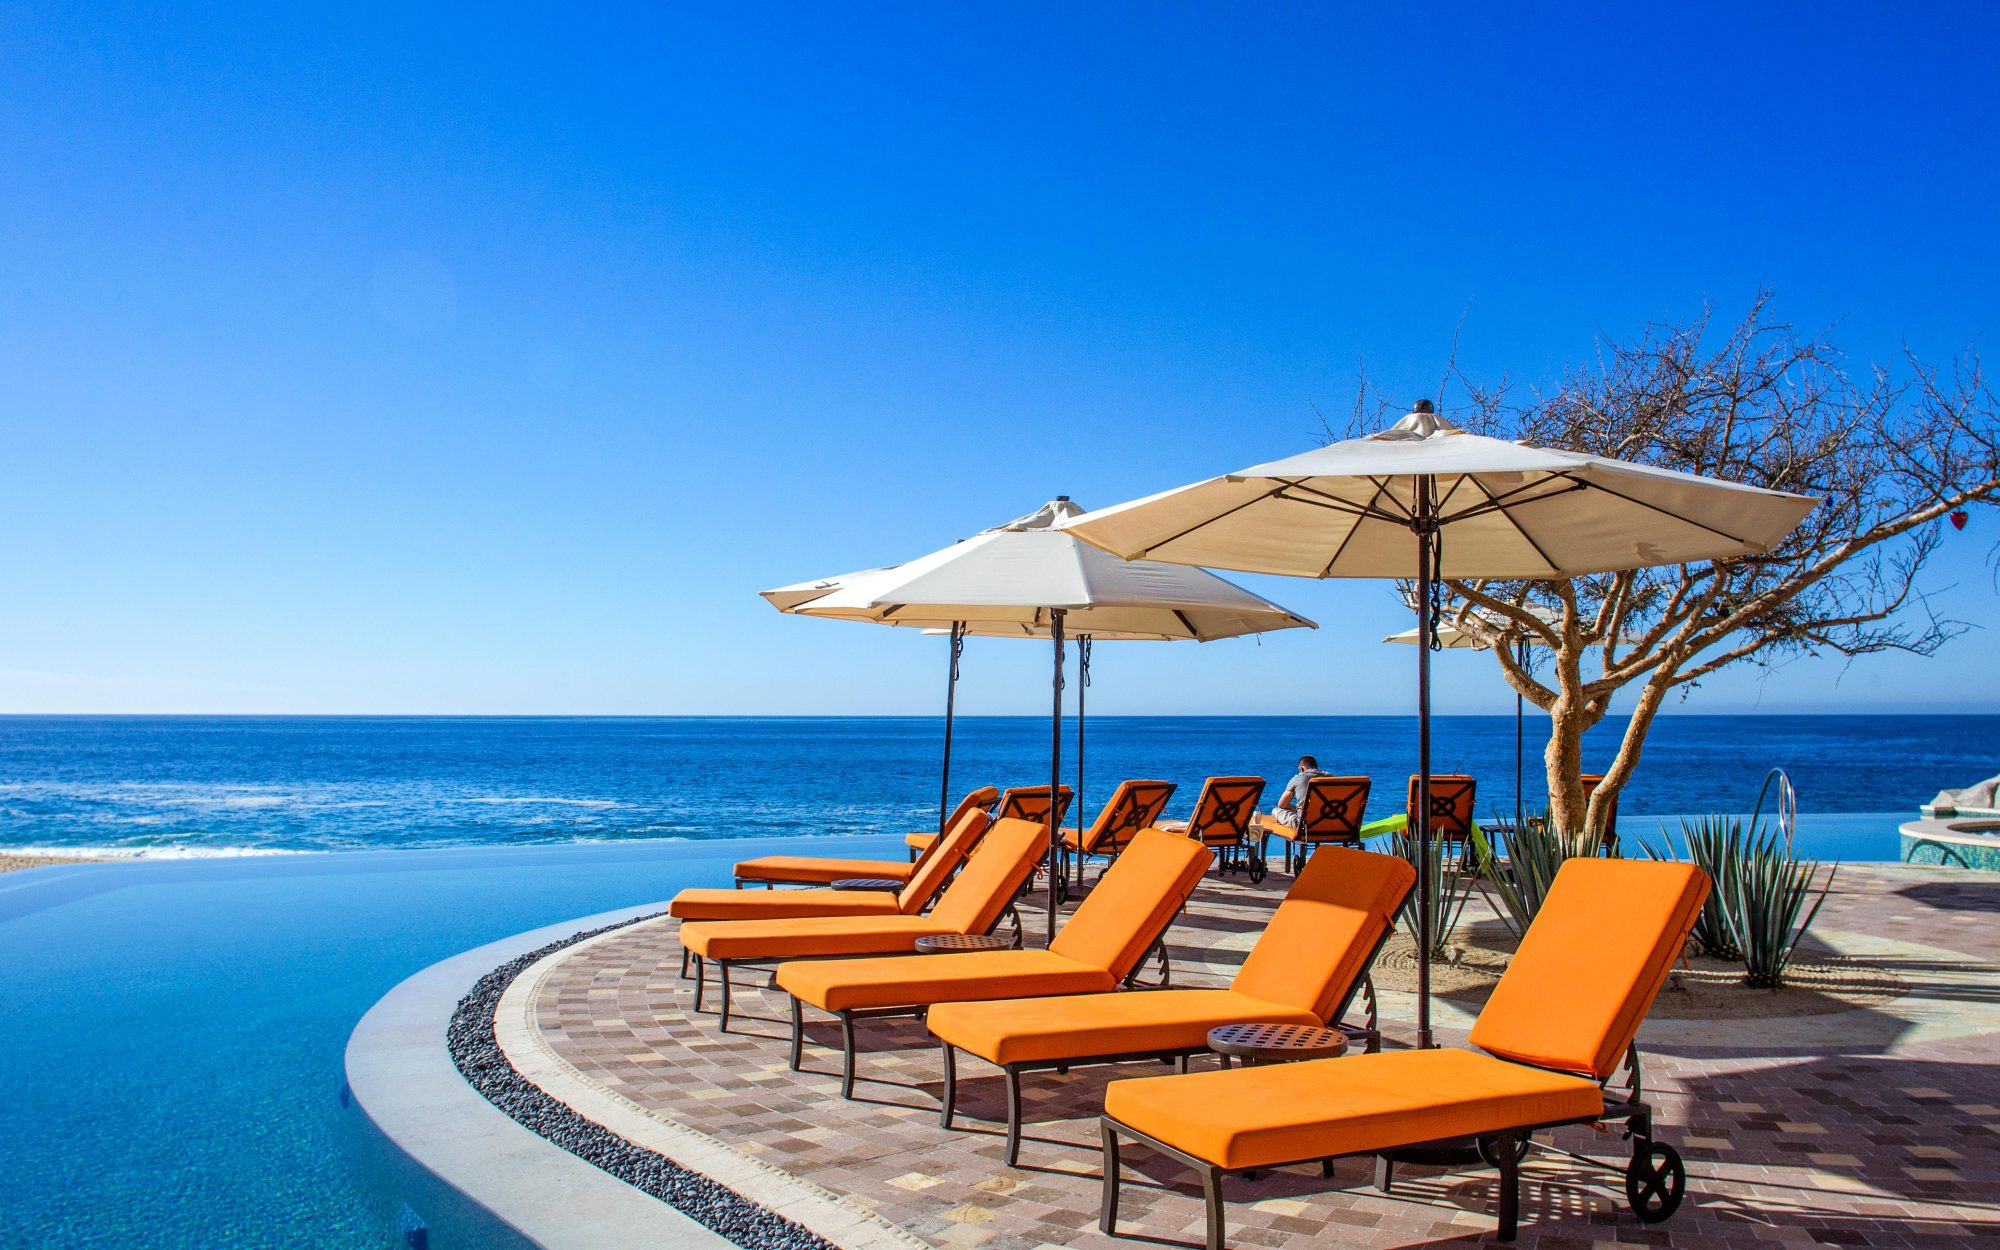 Best Mexico Beach Resorts: Grand Solmar Land's End Resort & Spa, Cabo San Lucas